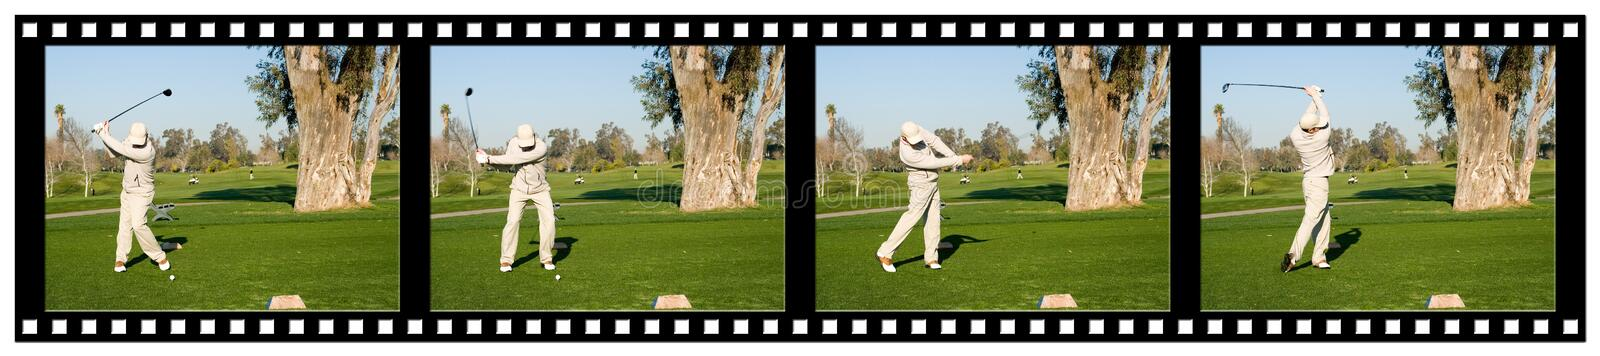 Golf Filmstrip. A sequence filmstrip of a golfer hitting a tee shot with a driver stock image